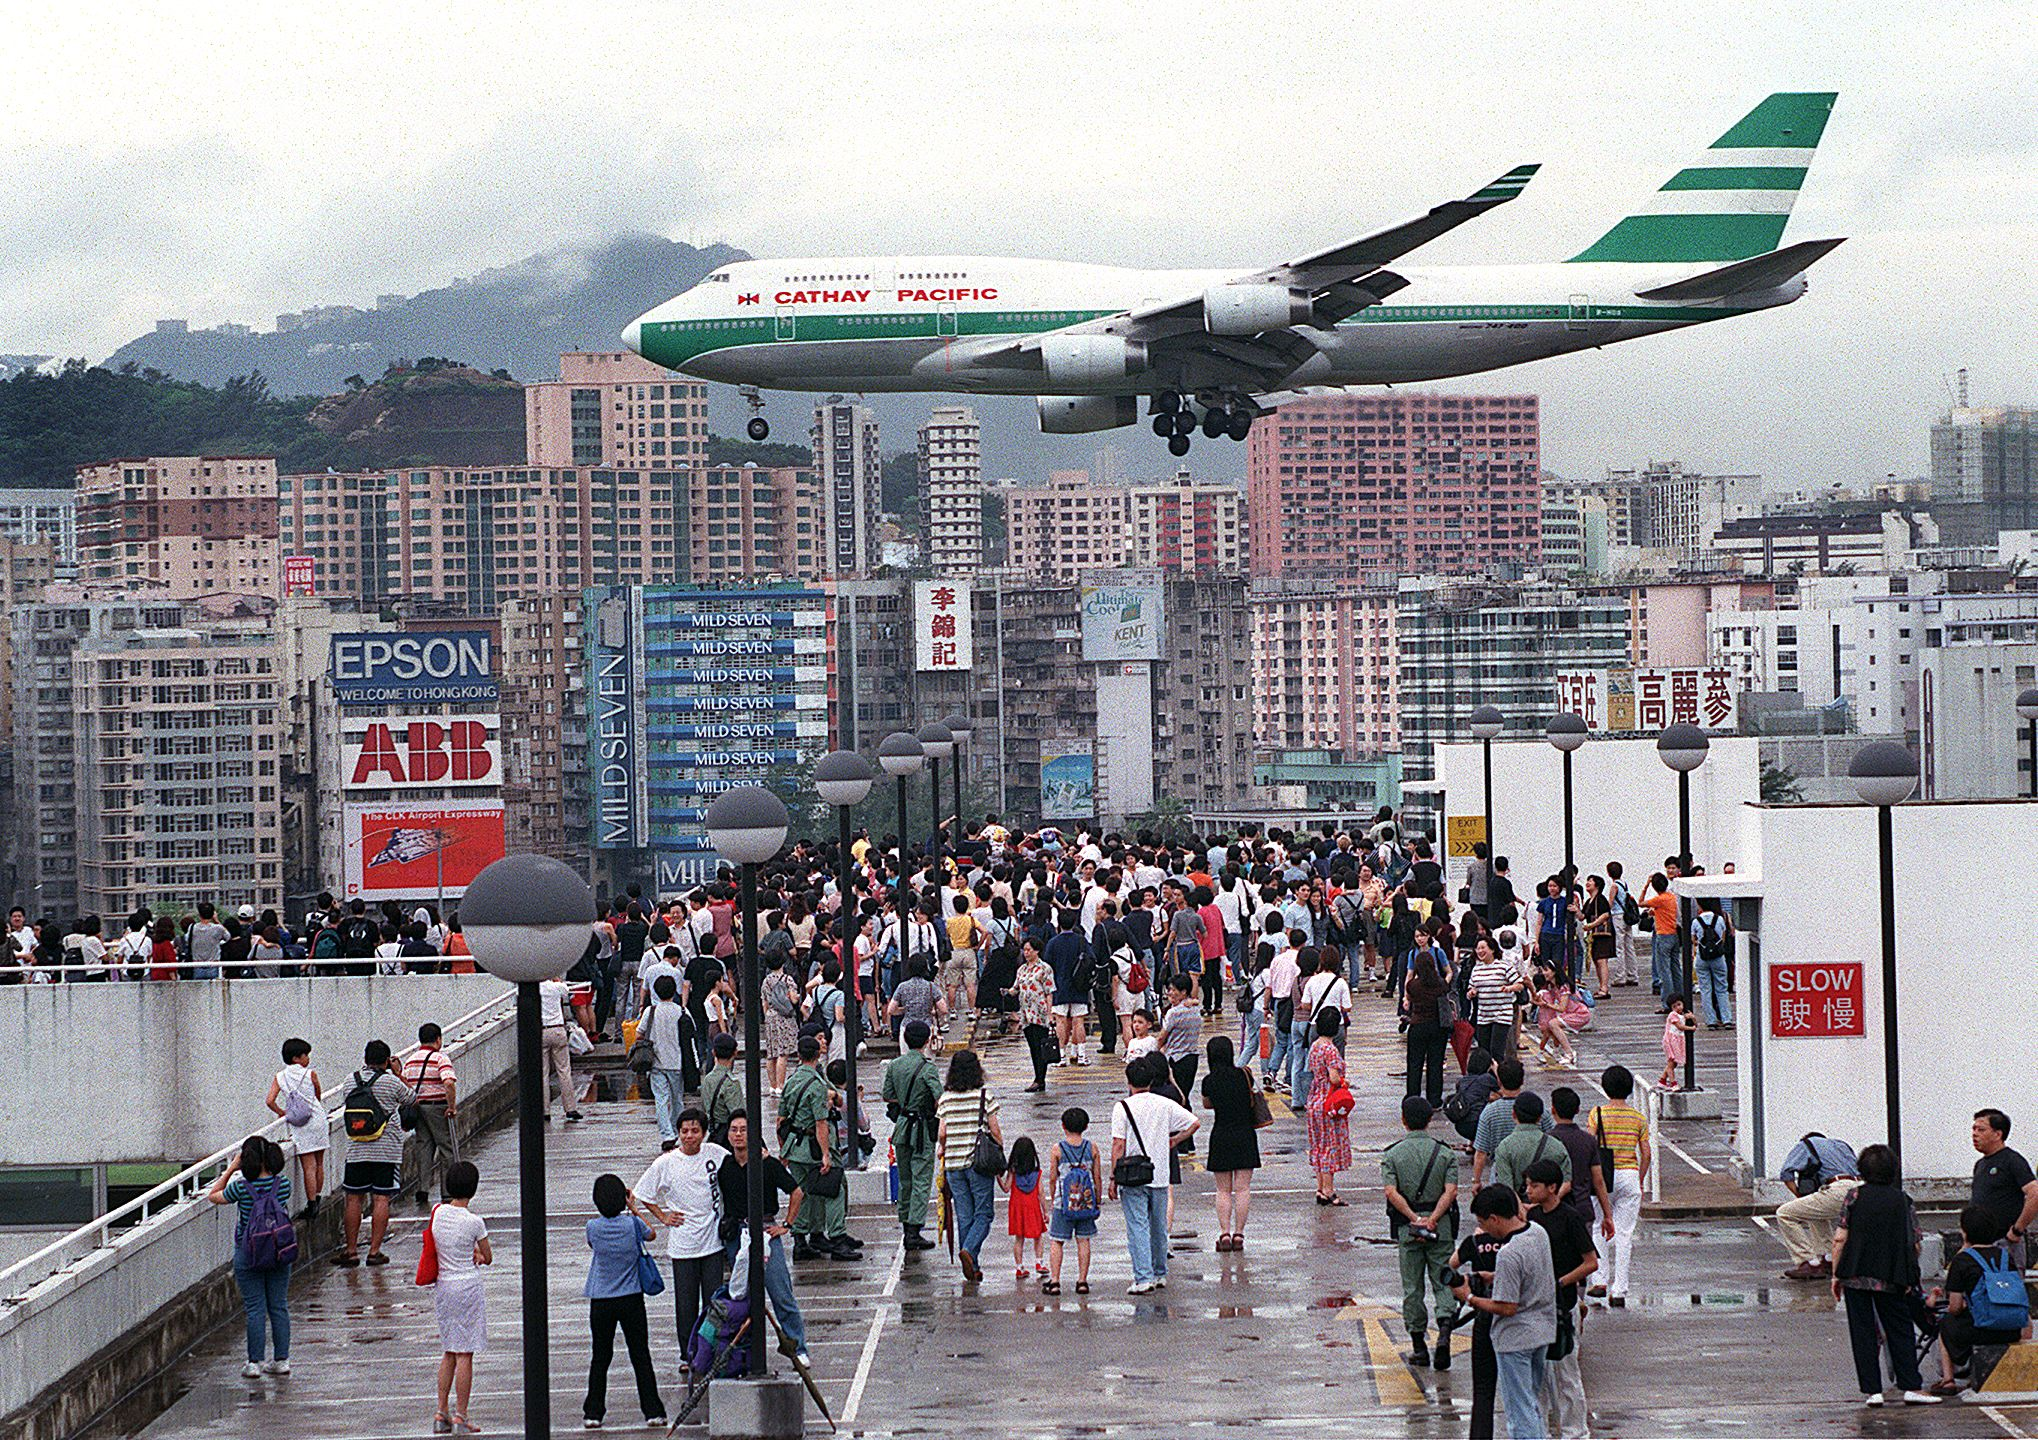 HONG KONG, CHINA: Hundreds of Hong Kong people gather onto Kai Tak Airport